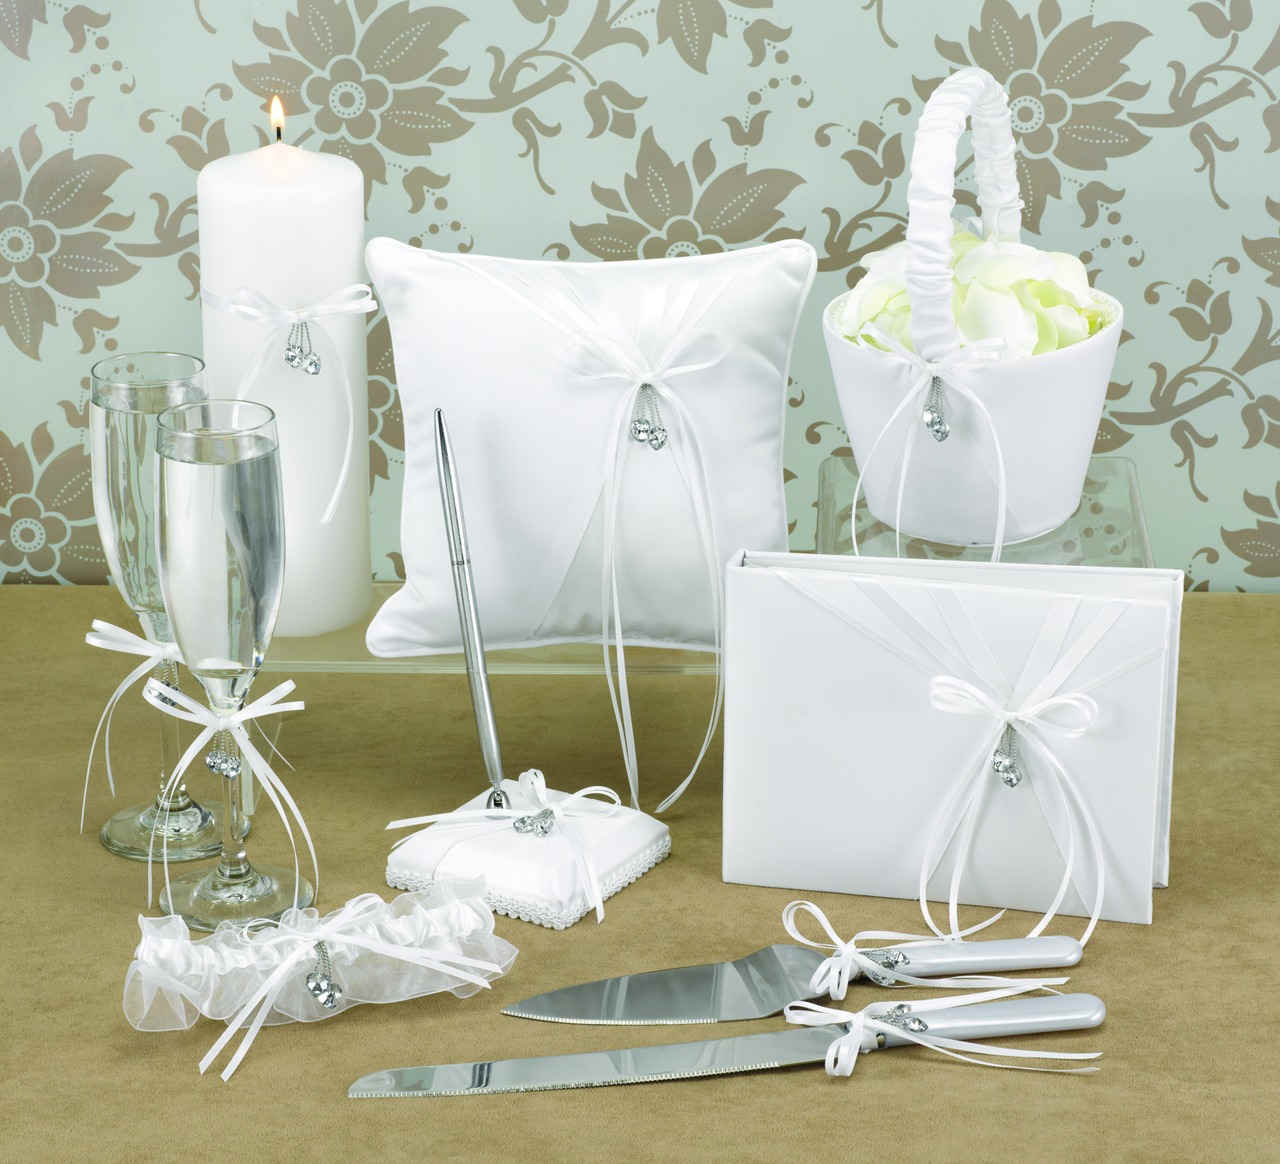 Wedding supplies romantic decoration for Where to buy wedding accessories